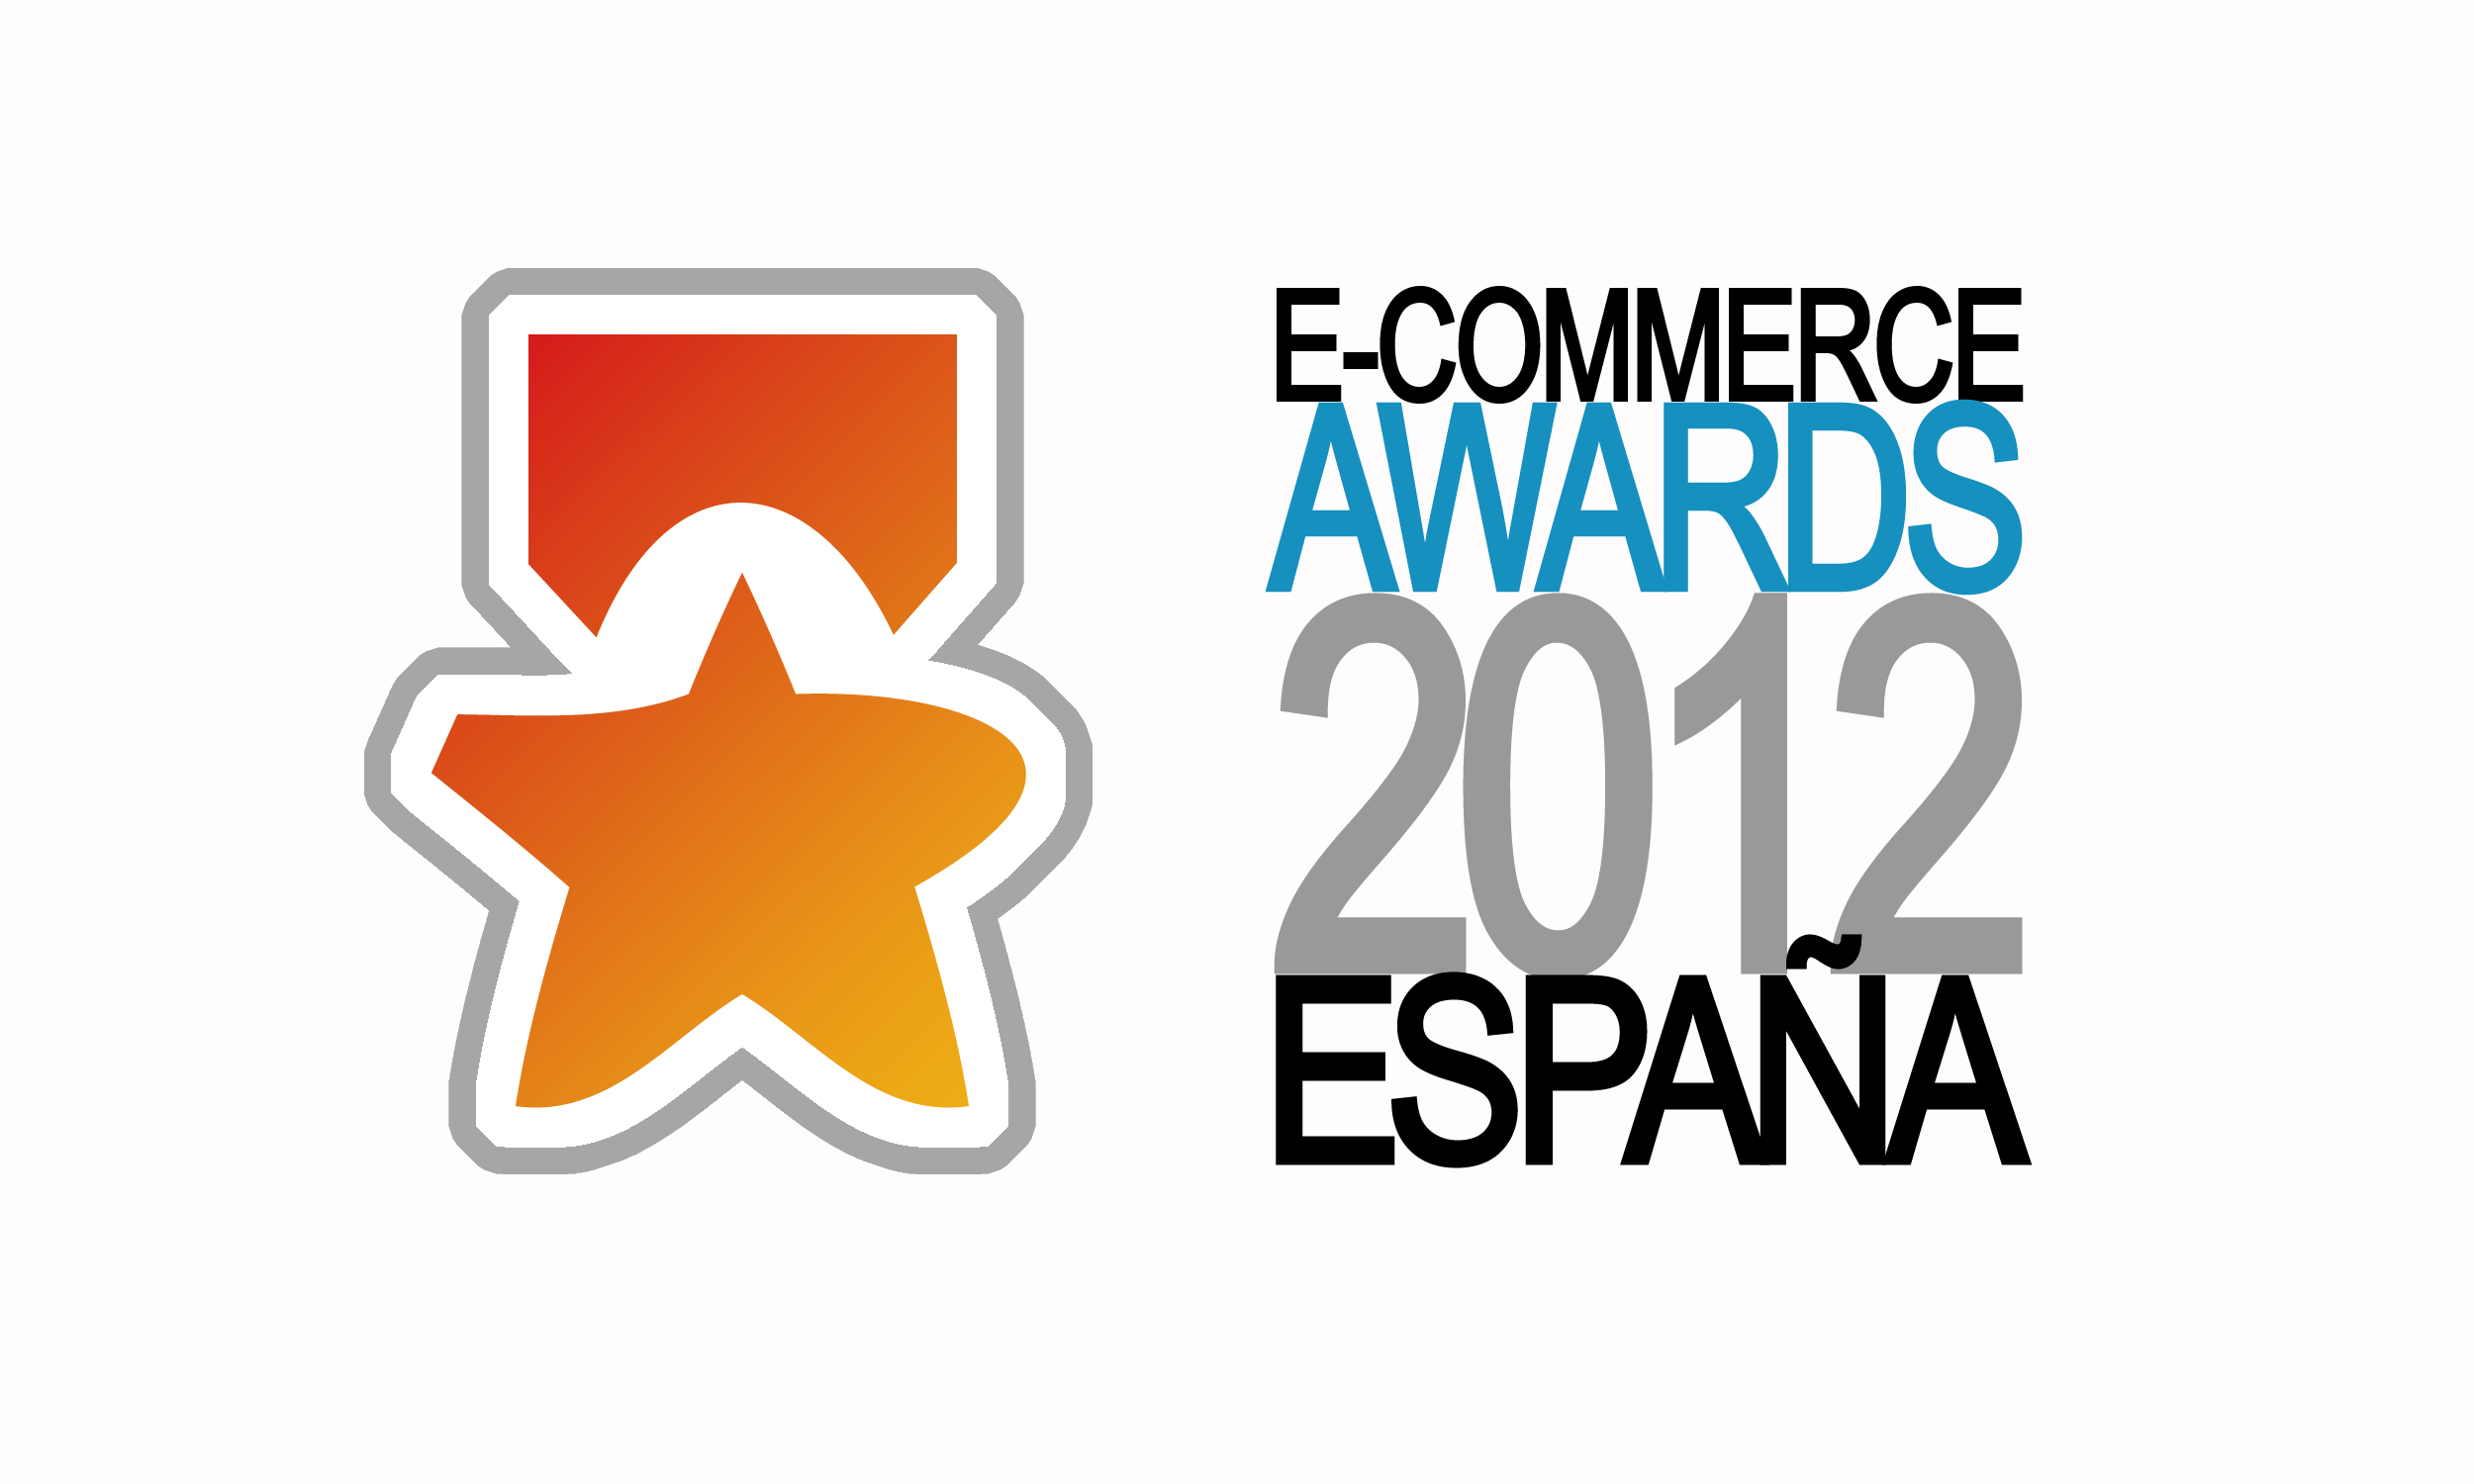 mobe-en-los-e-commerce-awards-2012-espana